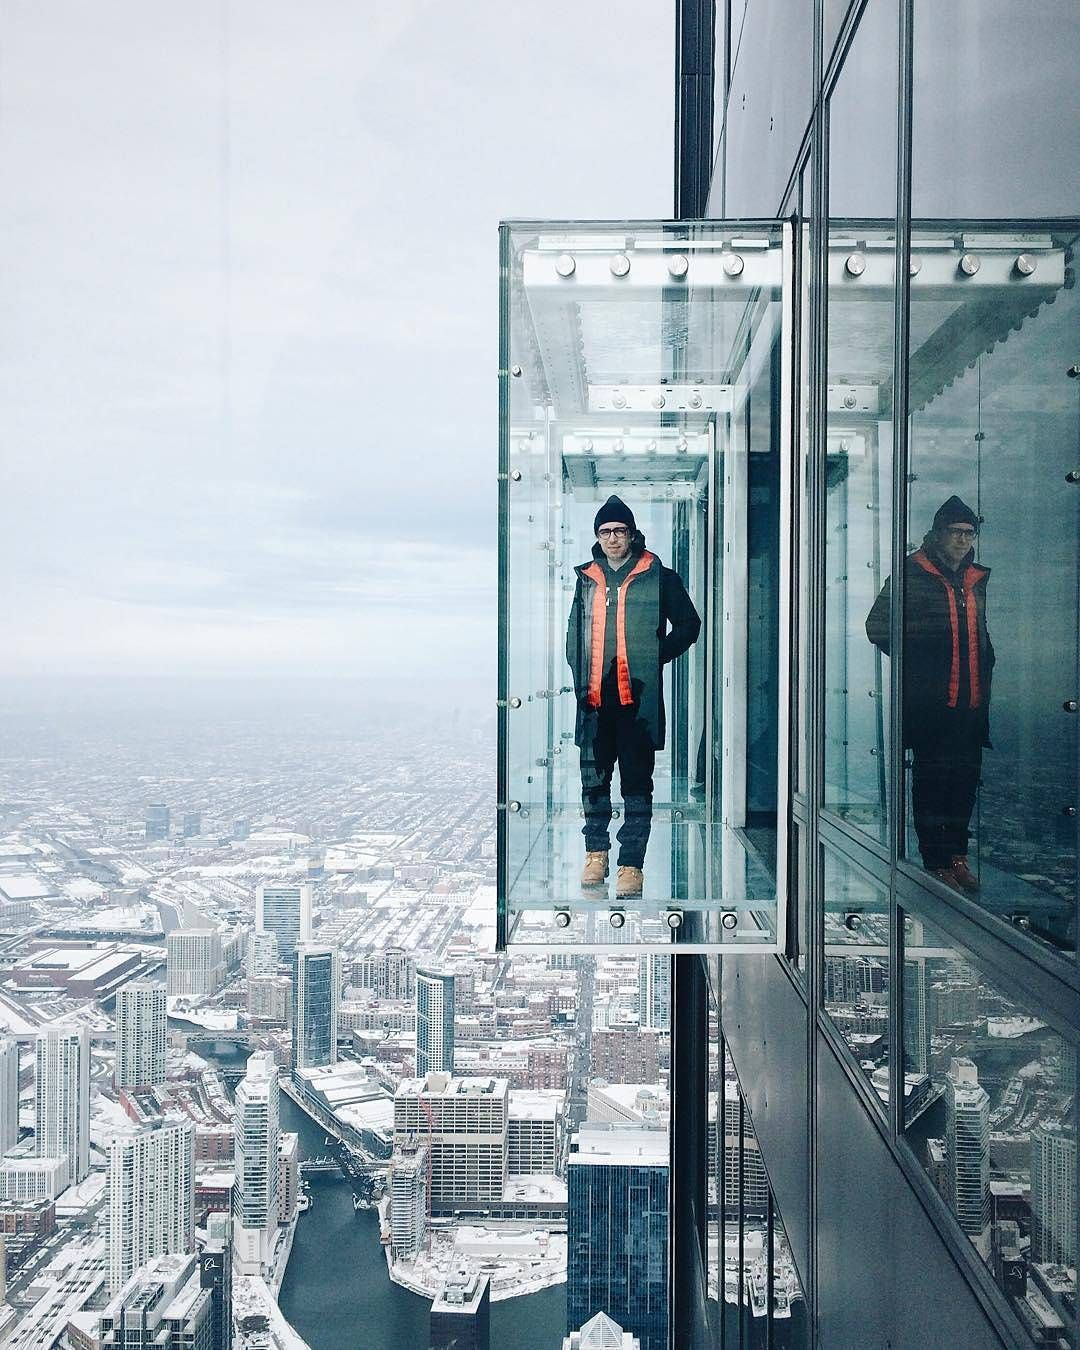 From the 103rd floor of the Willis Tower, @petewilliams ...